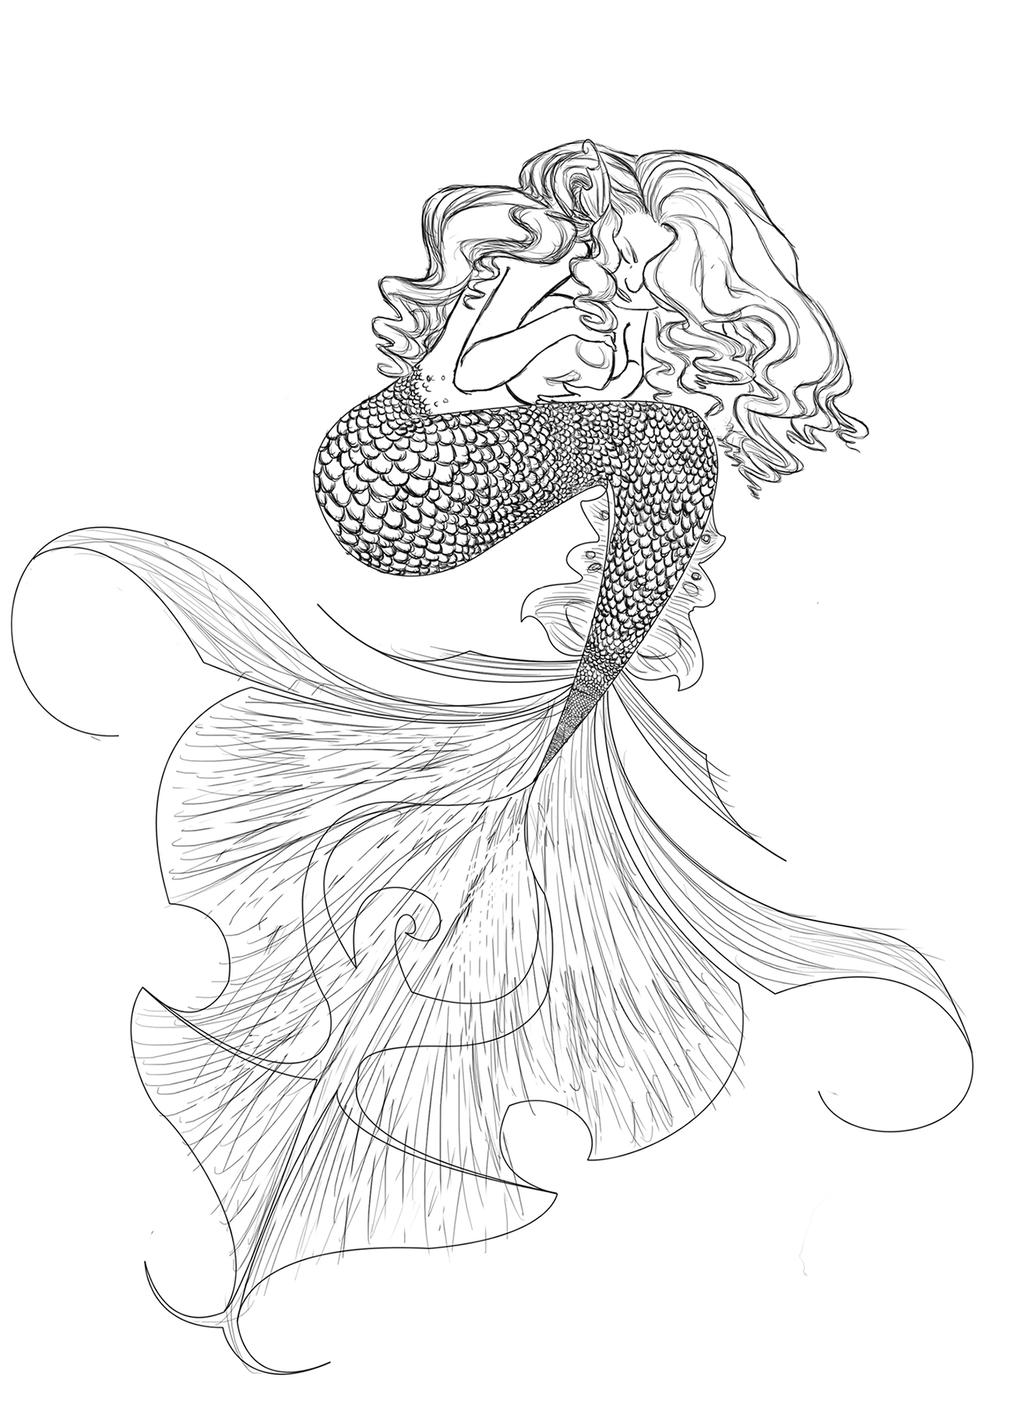 Mermaid line drawing by jocegurr on deviantart for Mermaid tail coloring pages